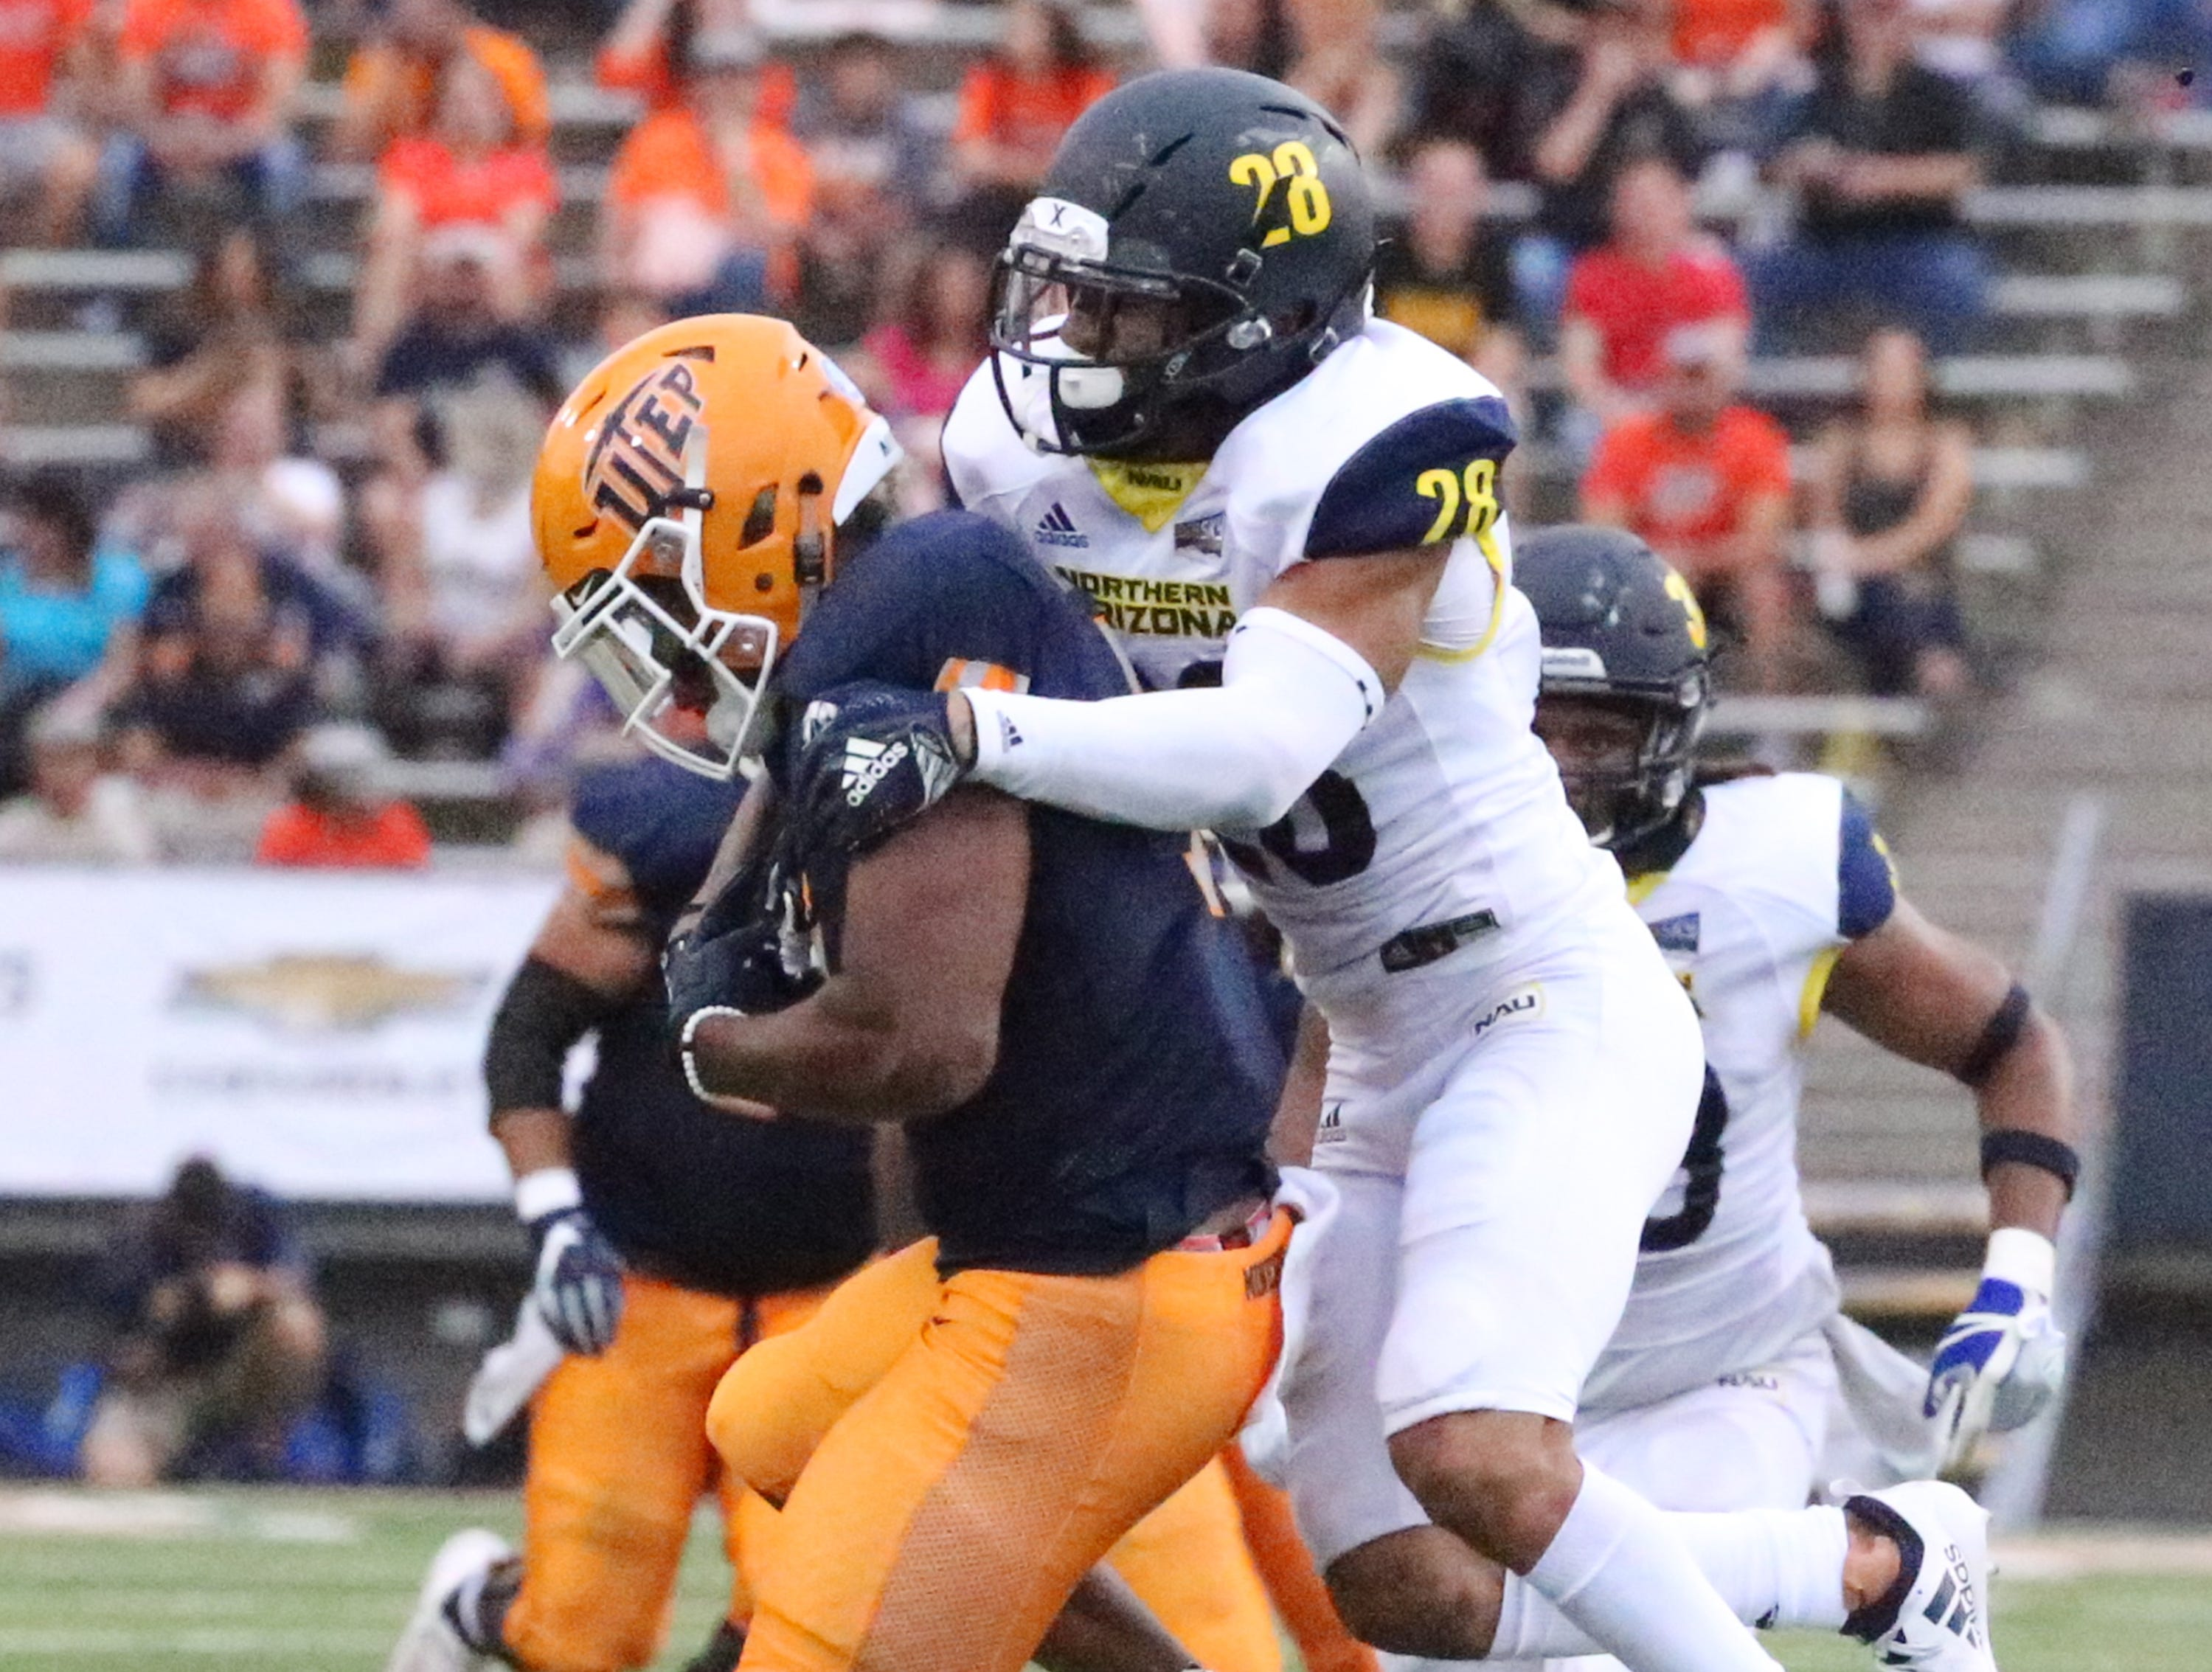 UTEP wide receiver Kavika Johnson, 7, could not catch the throw while being chased by Northern Arizona safety Wes Sutton, 28, Saturday night in the Sun Bowl.